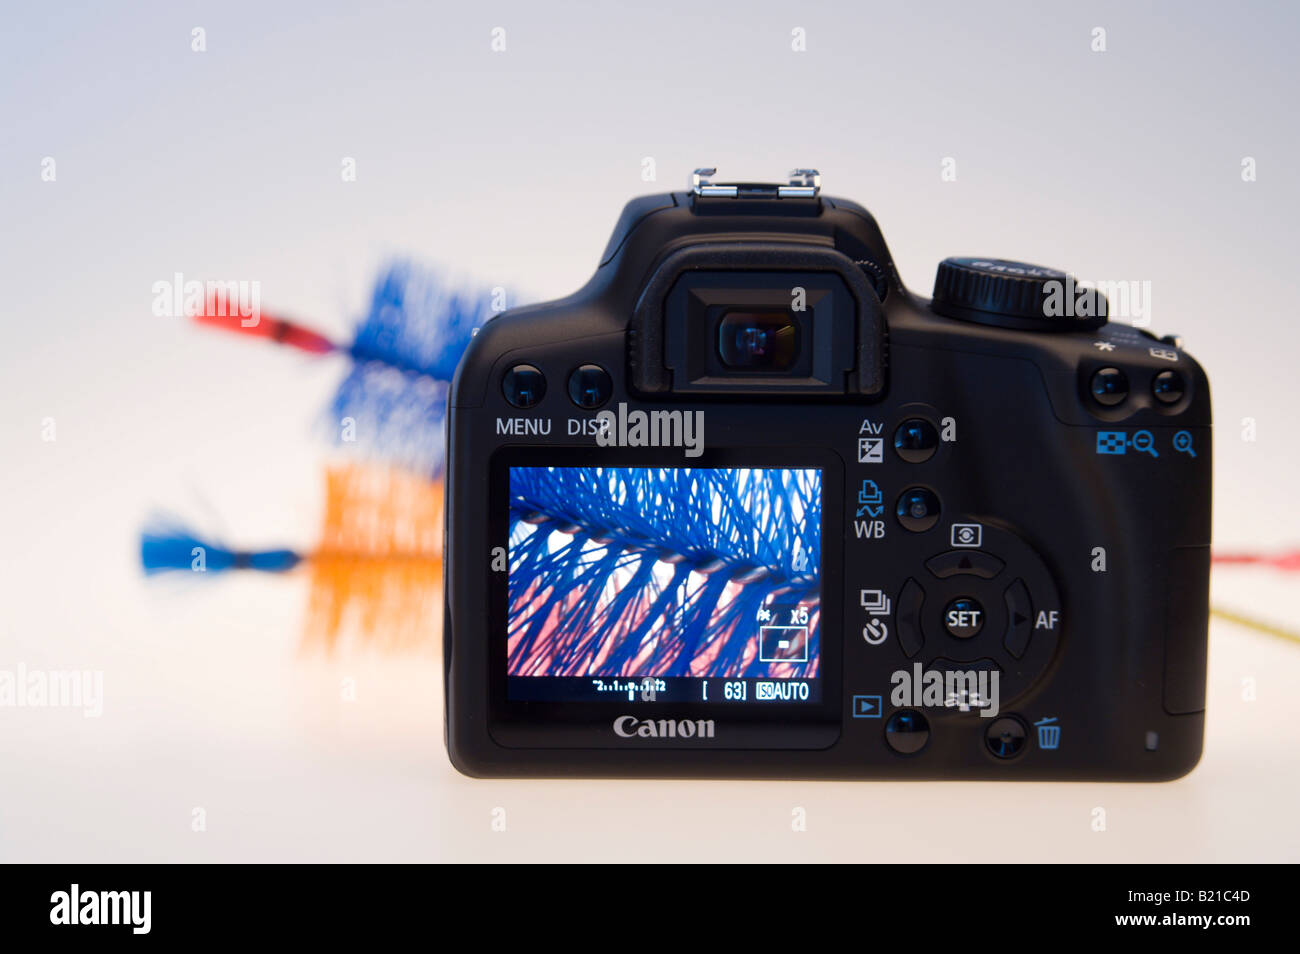 canon eos 1000d digital slr camera july 2008 launch product shot rh alamy com Canon EOS 1000D Tren Tay Canon EOS Rebel XS 1000D